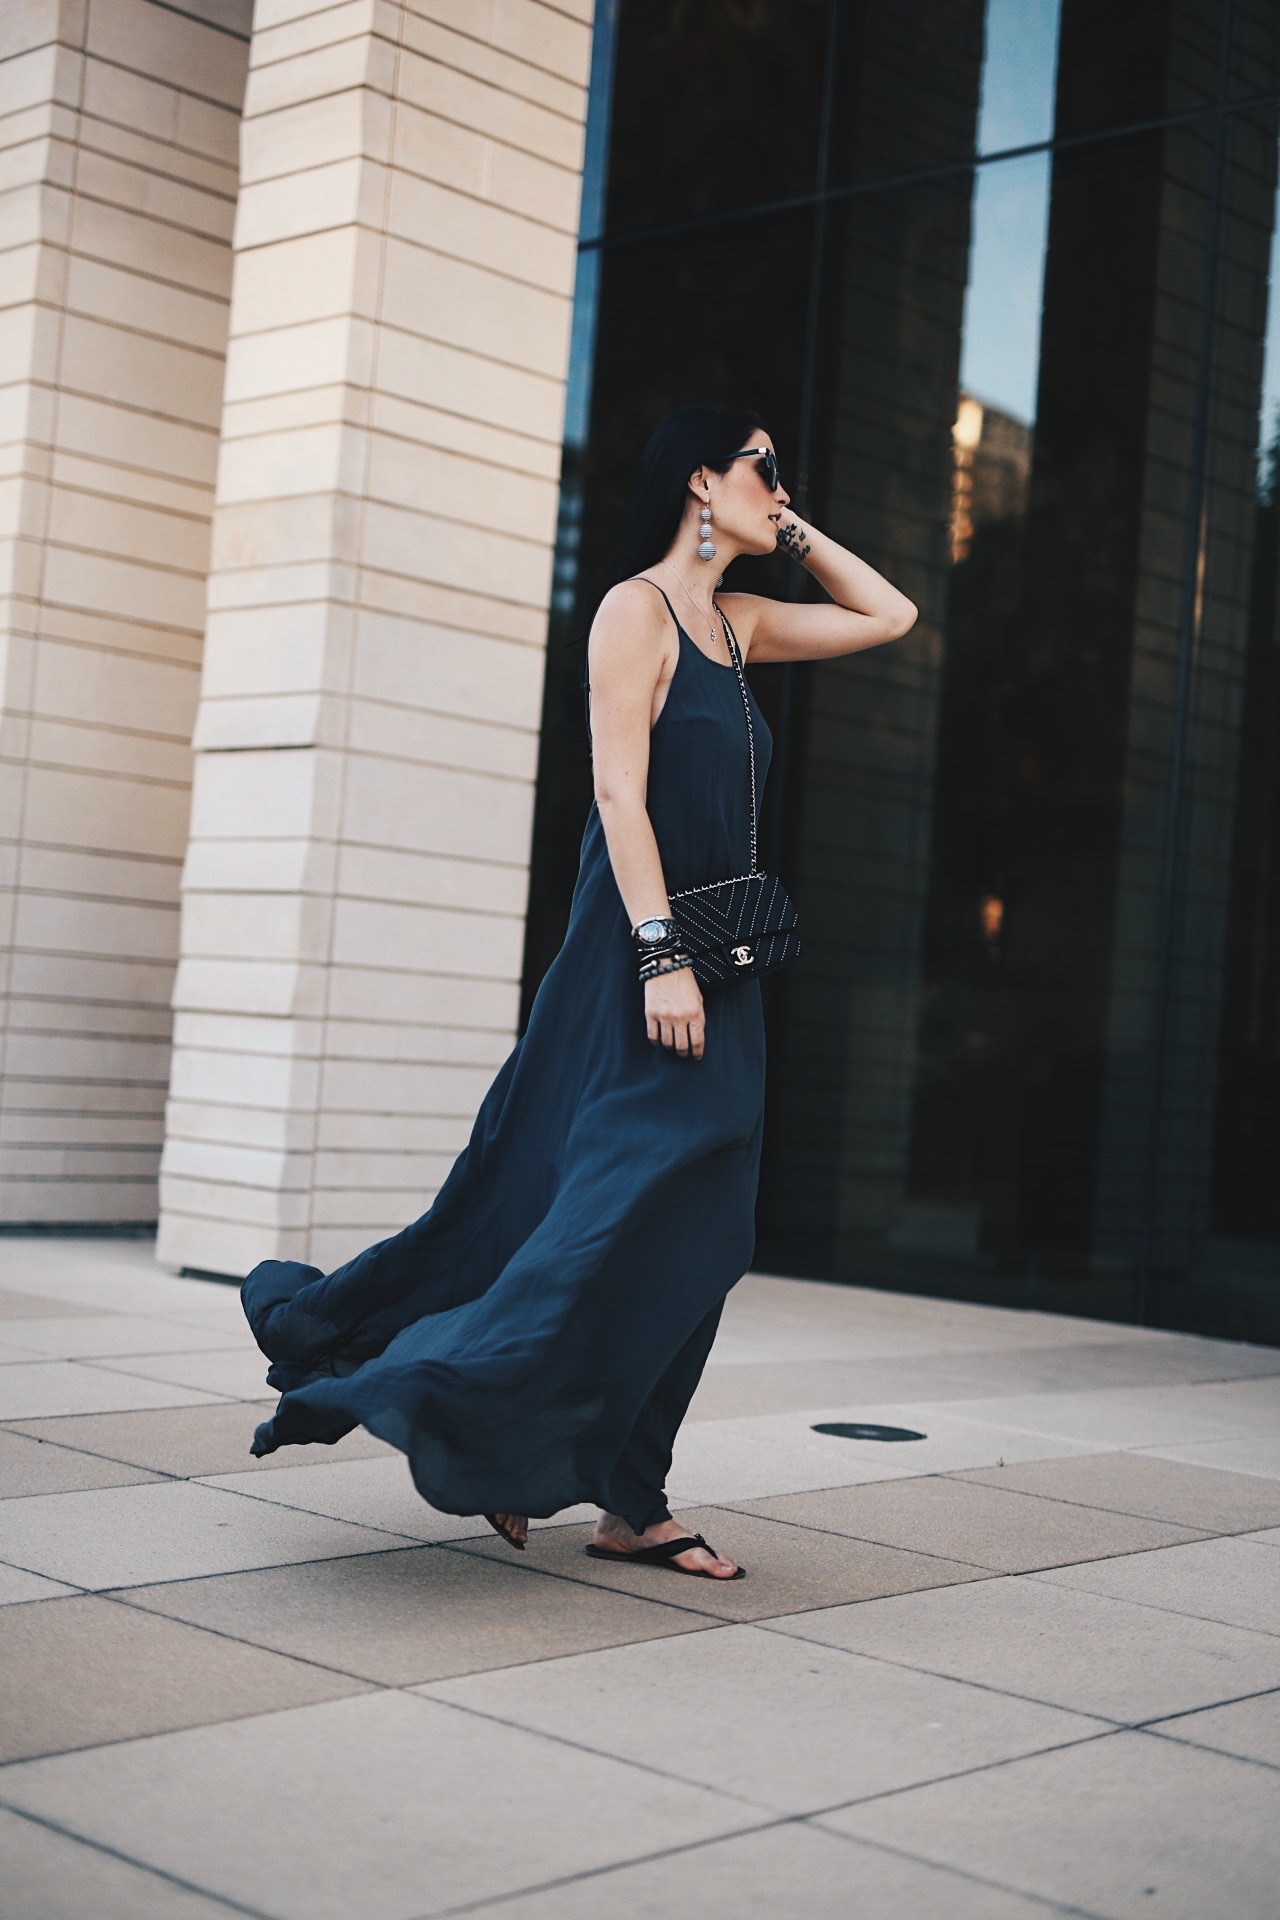 DTKAustin shares her three favorite outfits for Spring with Gentle Fawn. Maxi dresses, dusters, and summer whites are on my Spring agenda. Click for more details!